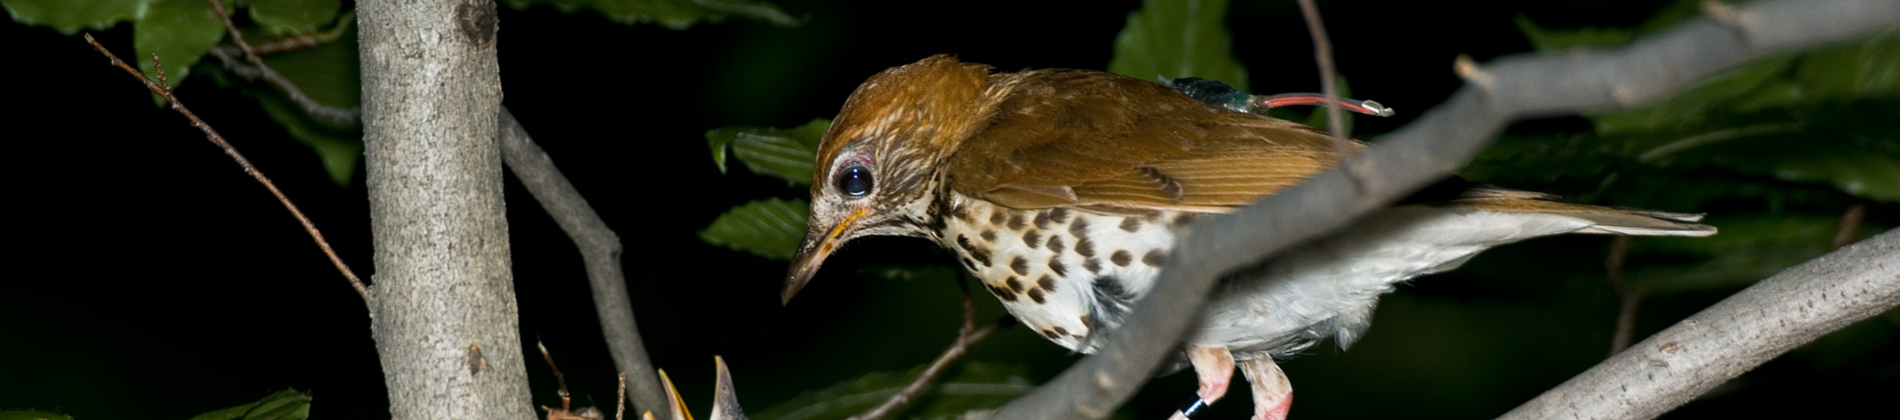 Wood thrush header